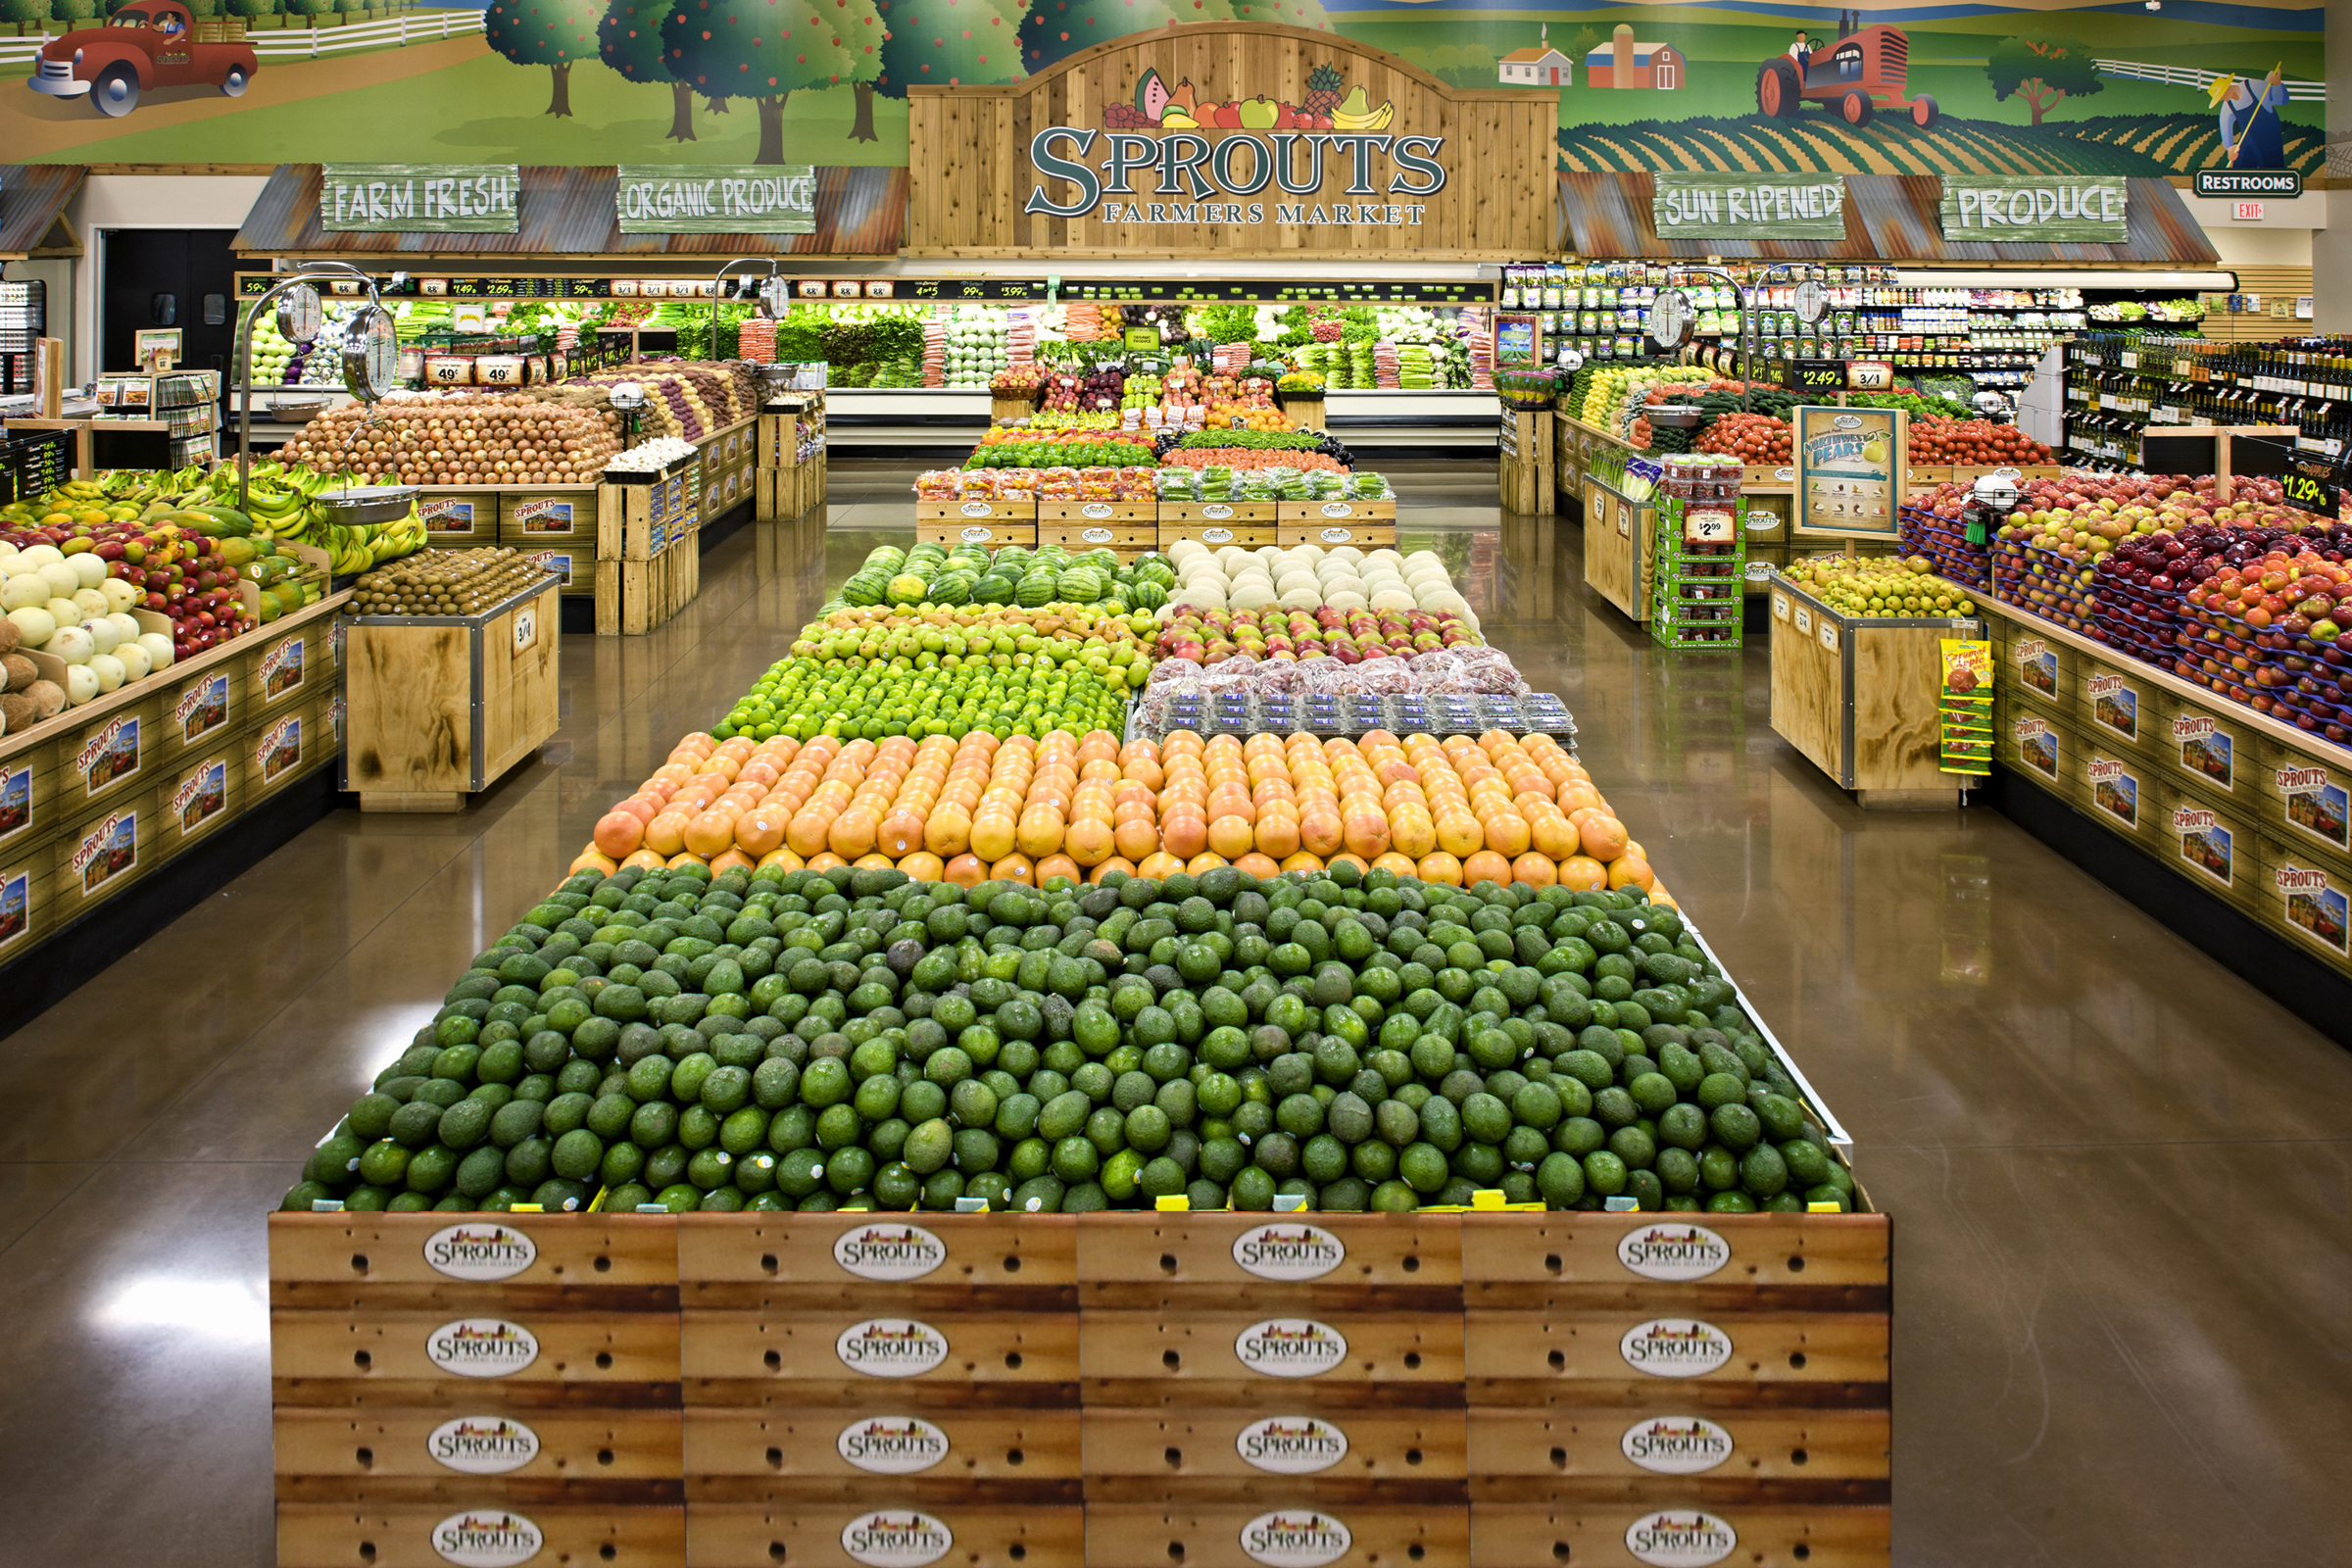 NY Sells 83243 Shares of Sprouts Farmers Market Inc (SFM)